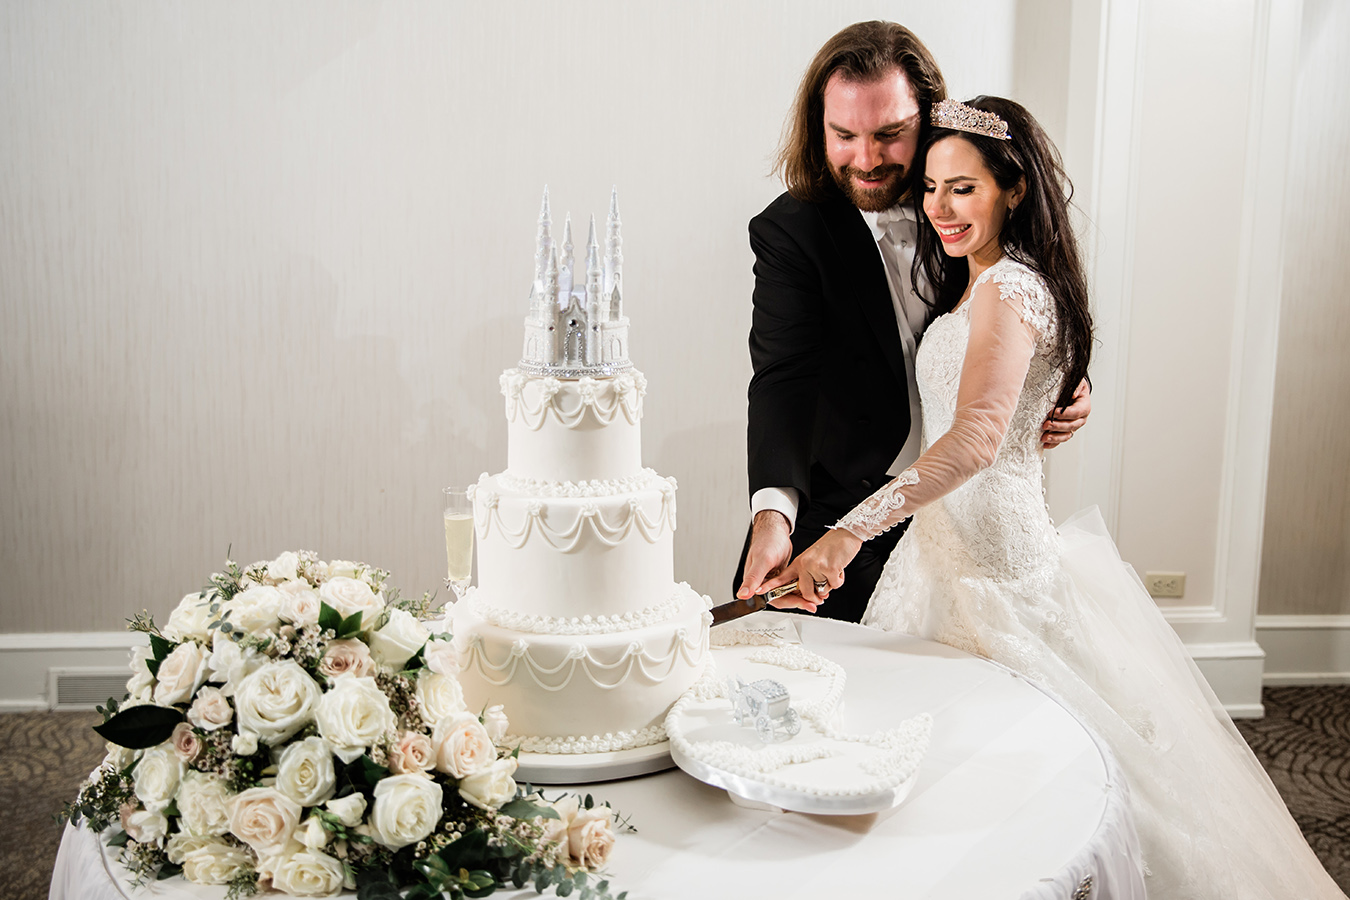 Jess' 3-tier wedding cake was fit for a princess - complete with a castle and royal carriage! - and featured decadent flavor profiles, including white velvet and apricot champagne and Italian cream and pistachio.